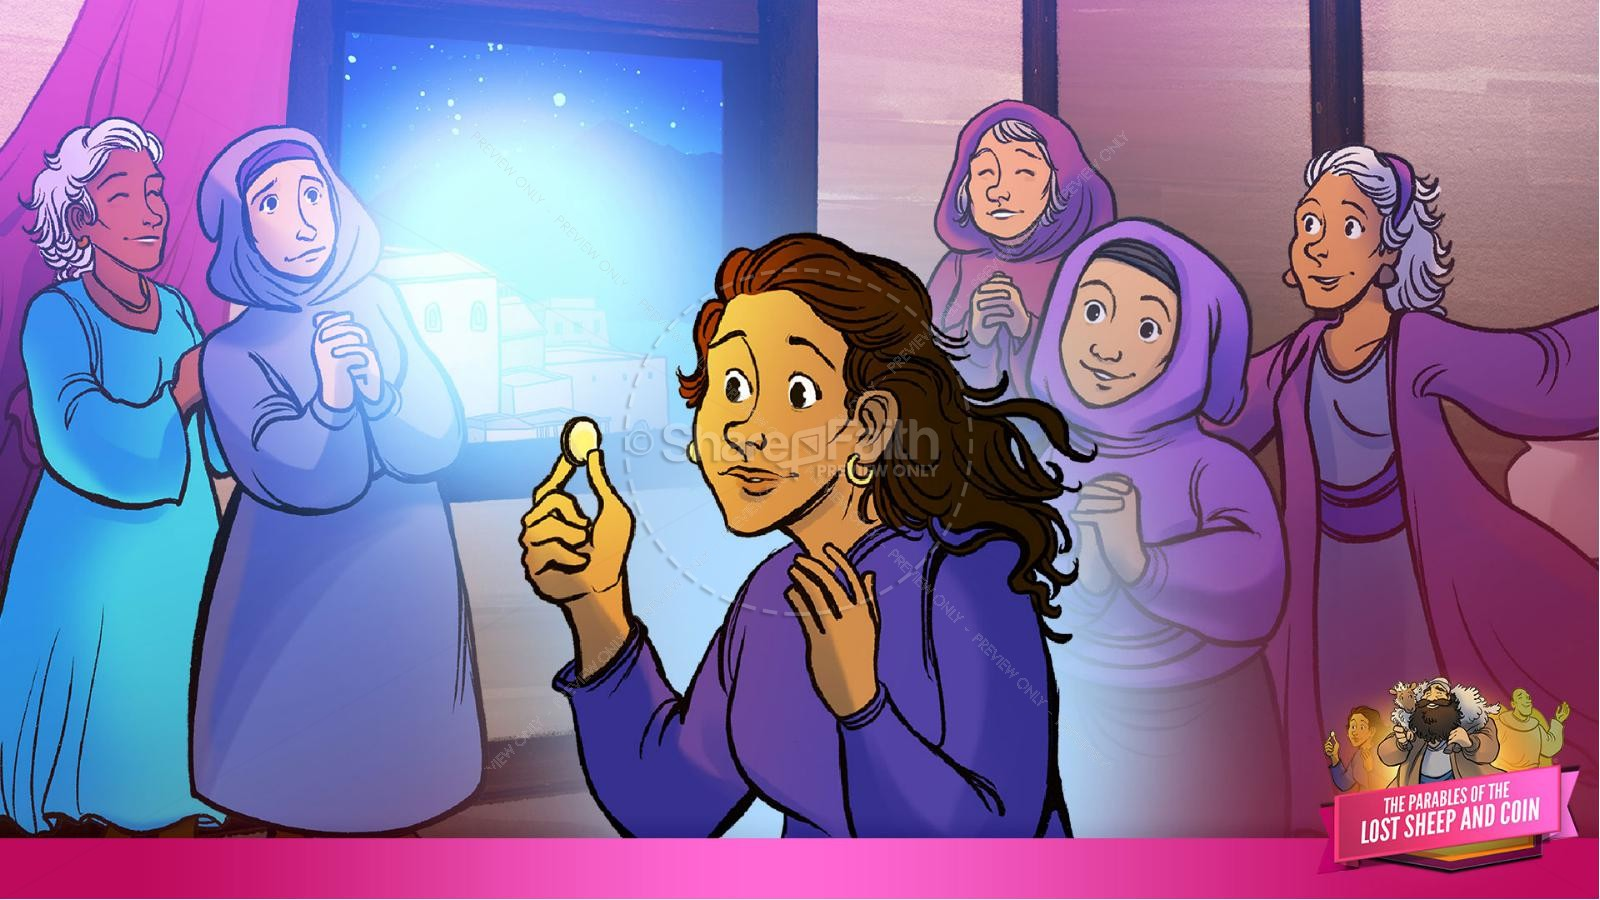 Luke 15 The Parables of the Lost Sheep and Coin Kids Bible Story | slide 30